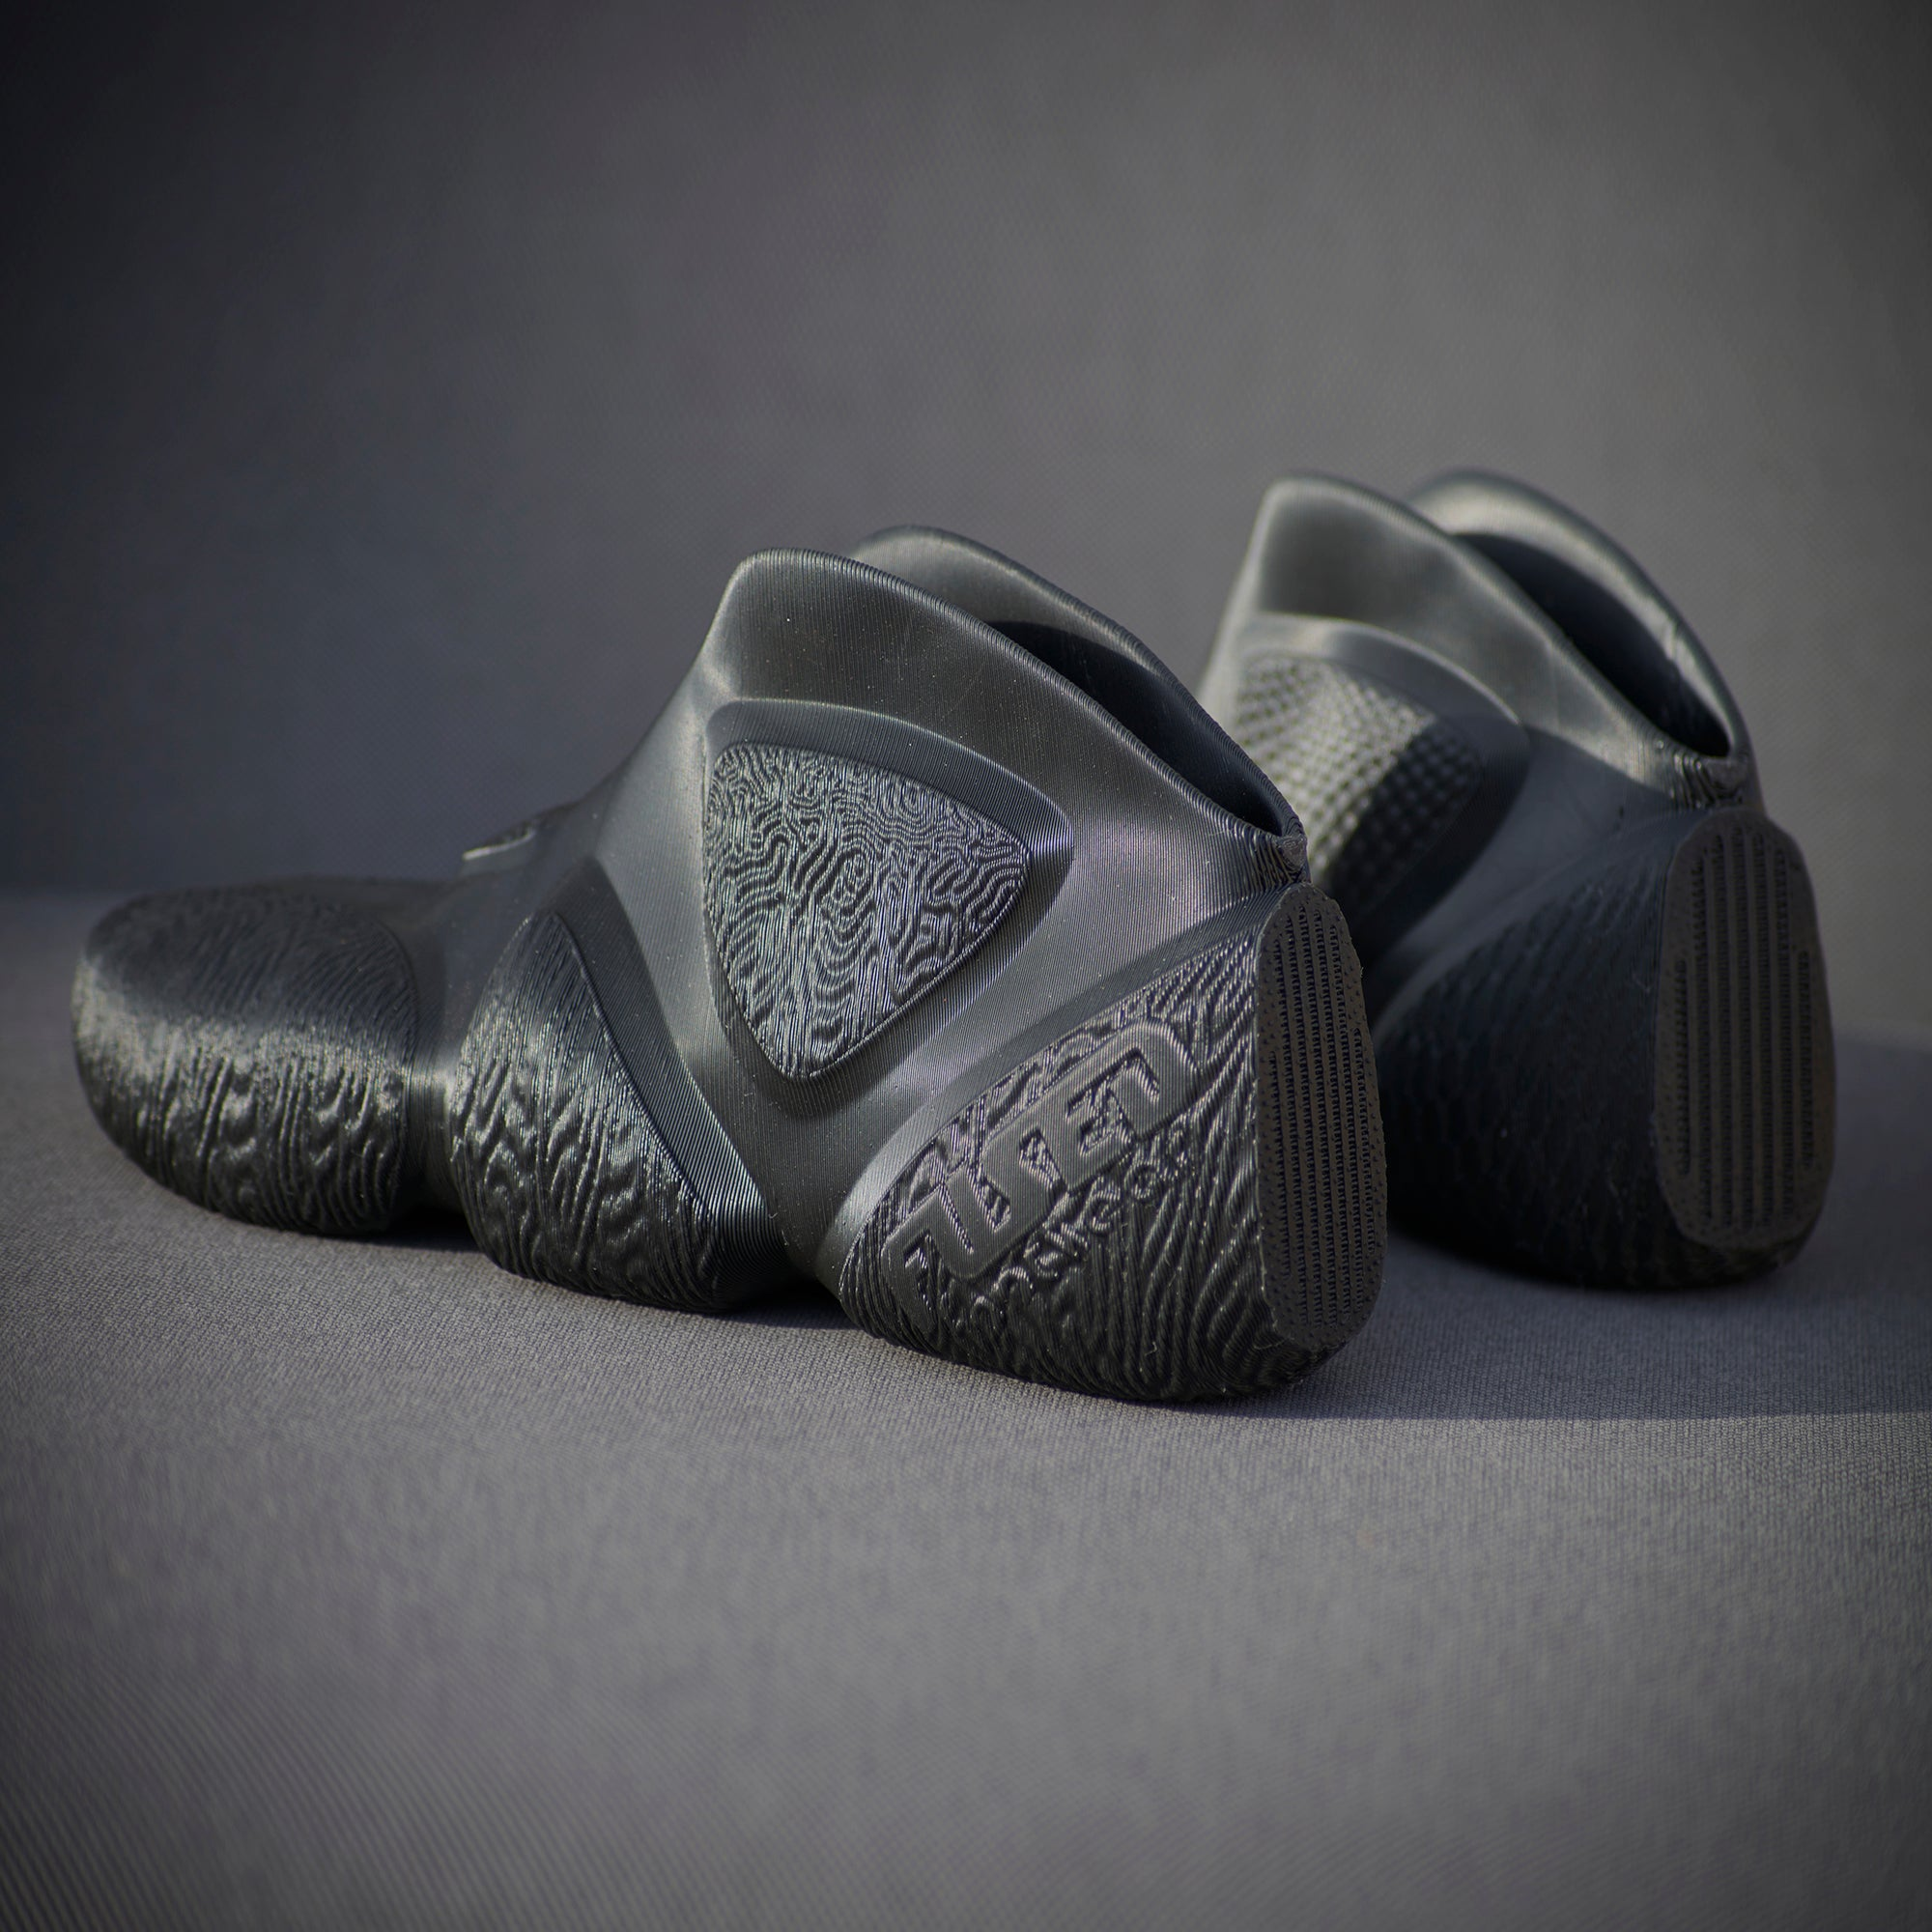 FUSED Gaiba - 3D printed footwear